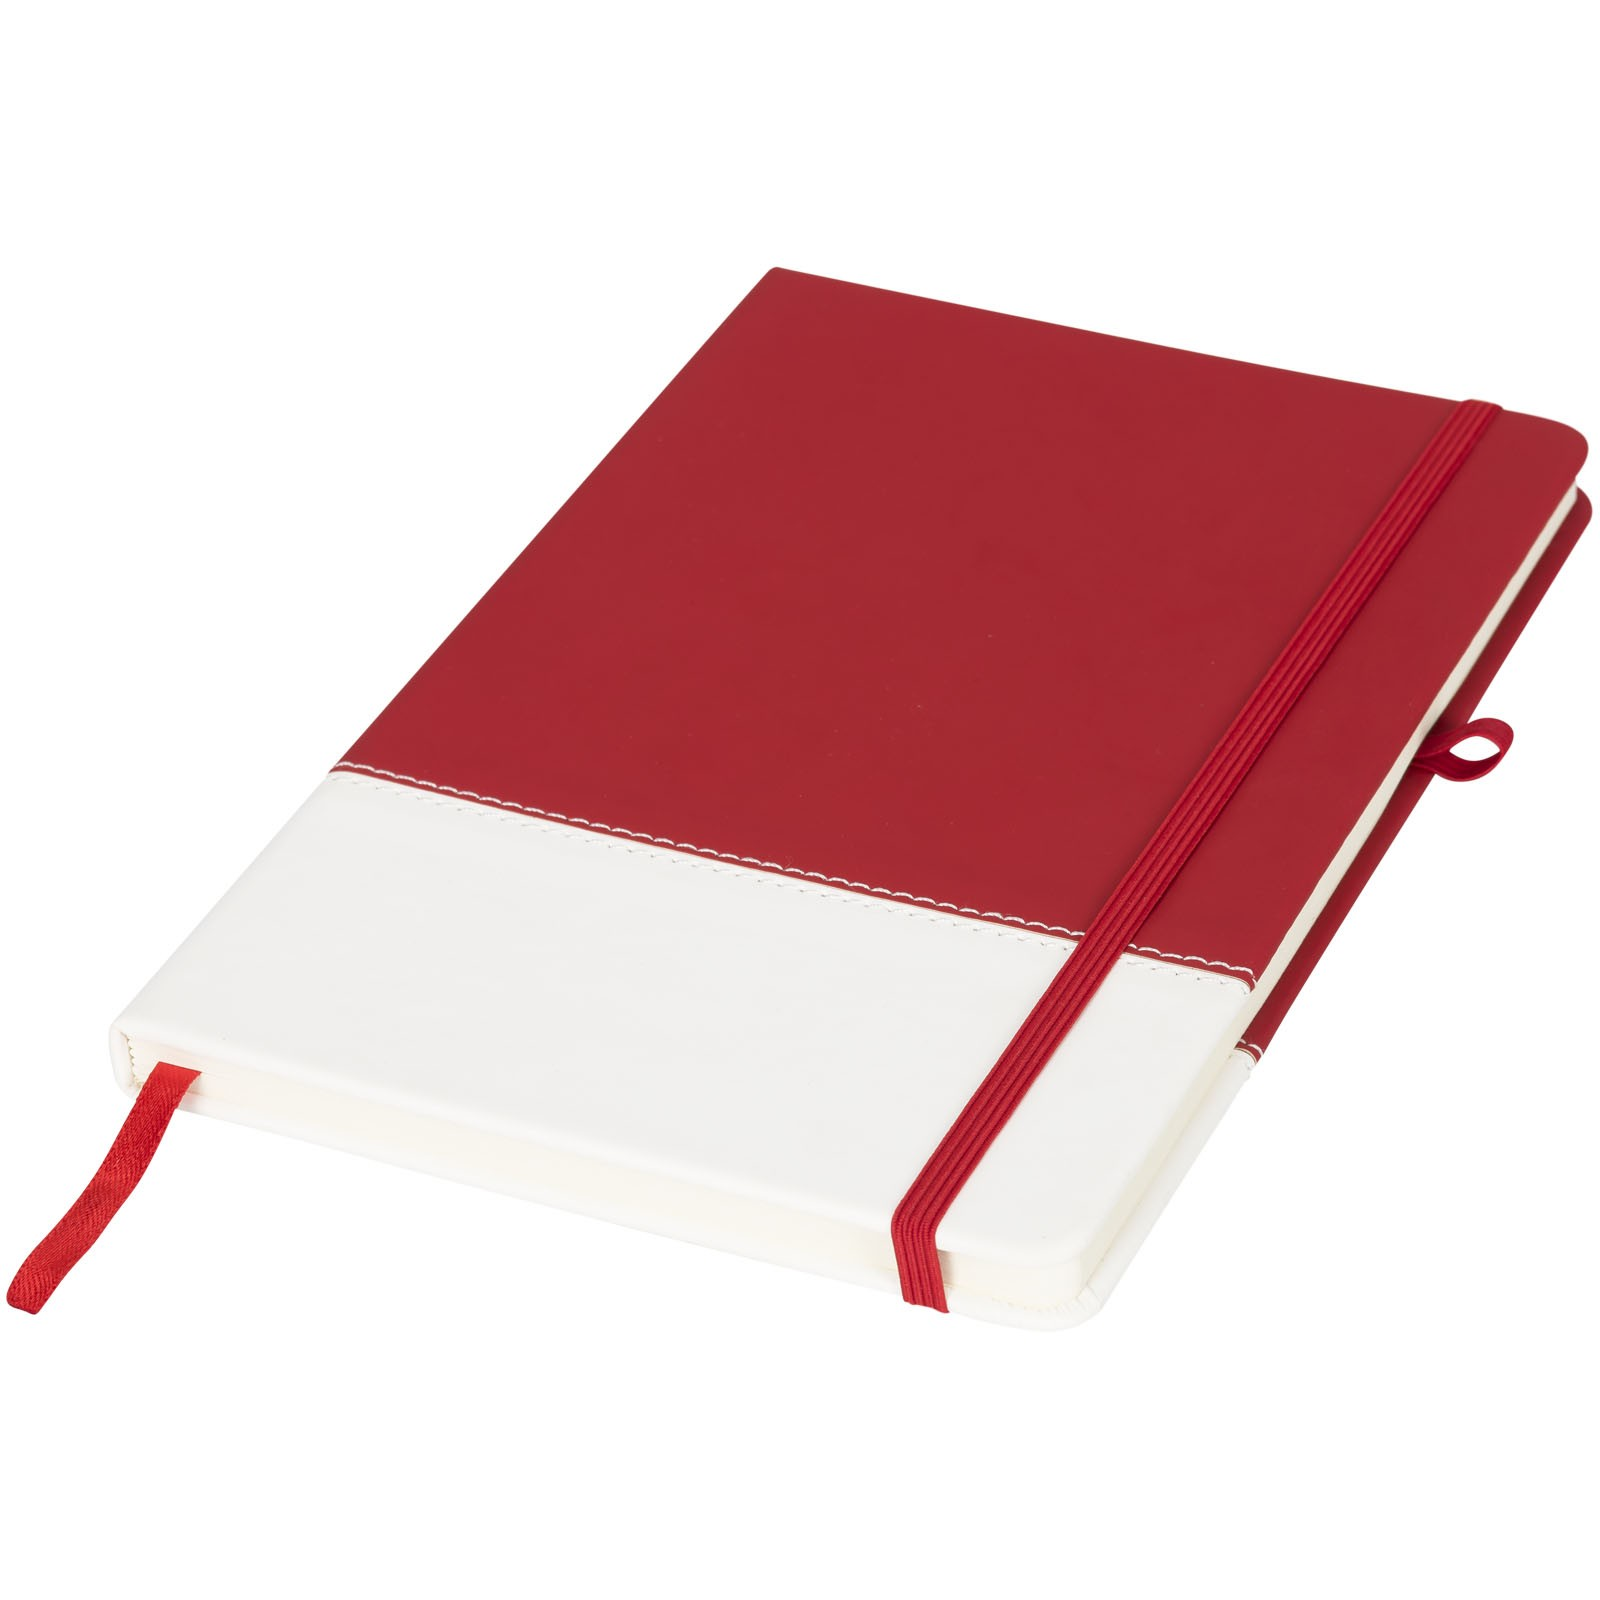 Two-tone A5 colour block notebook - Red